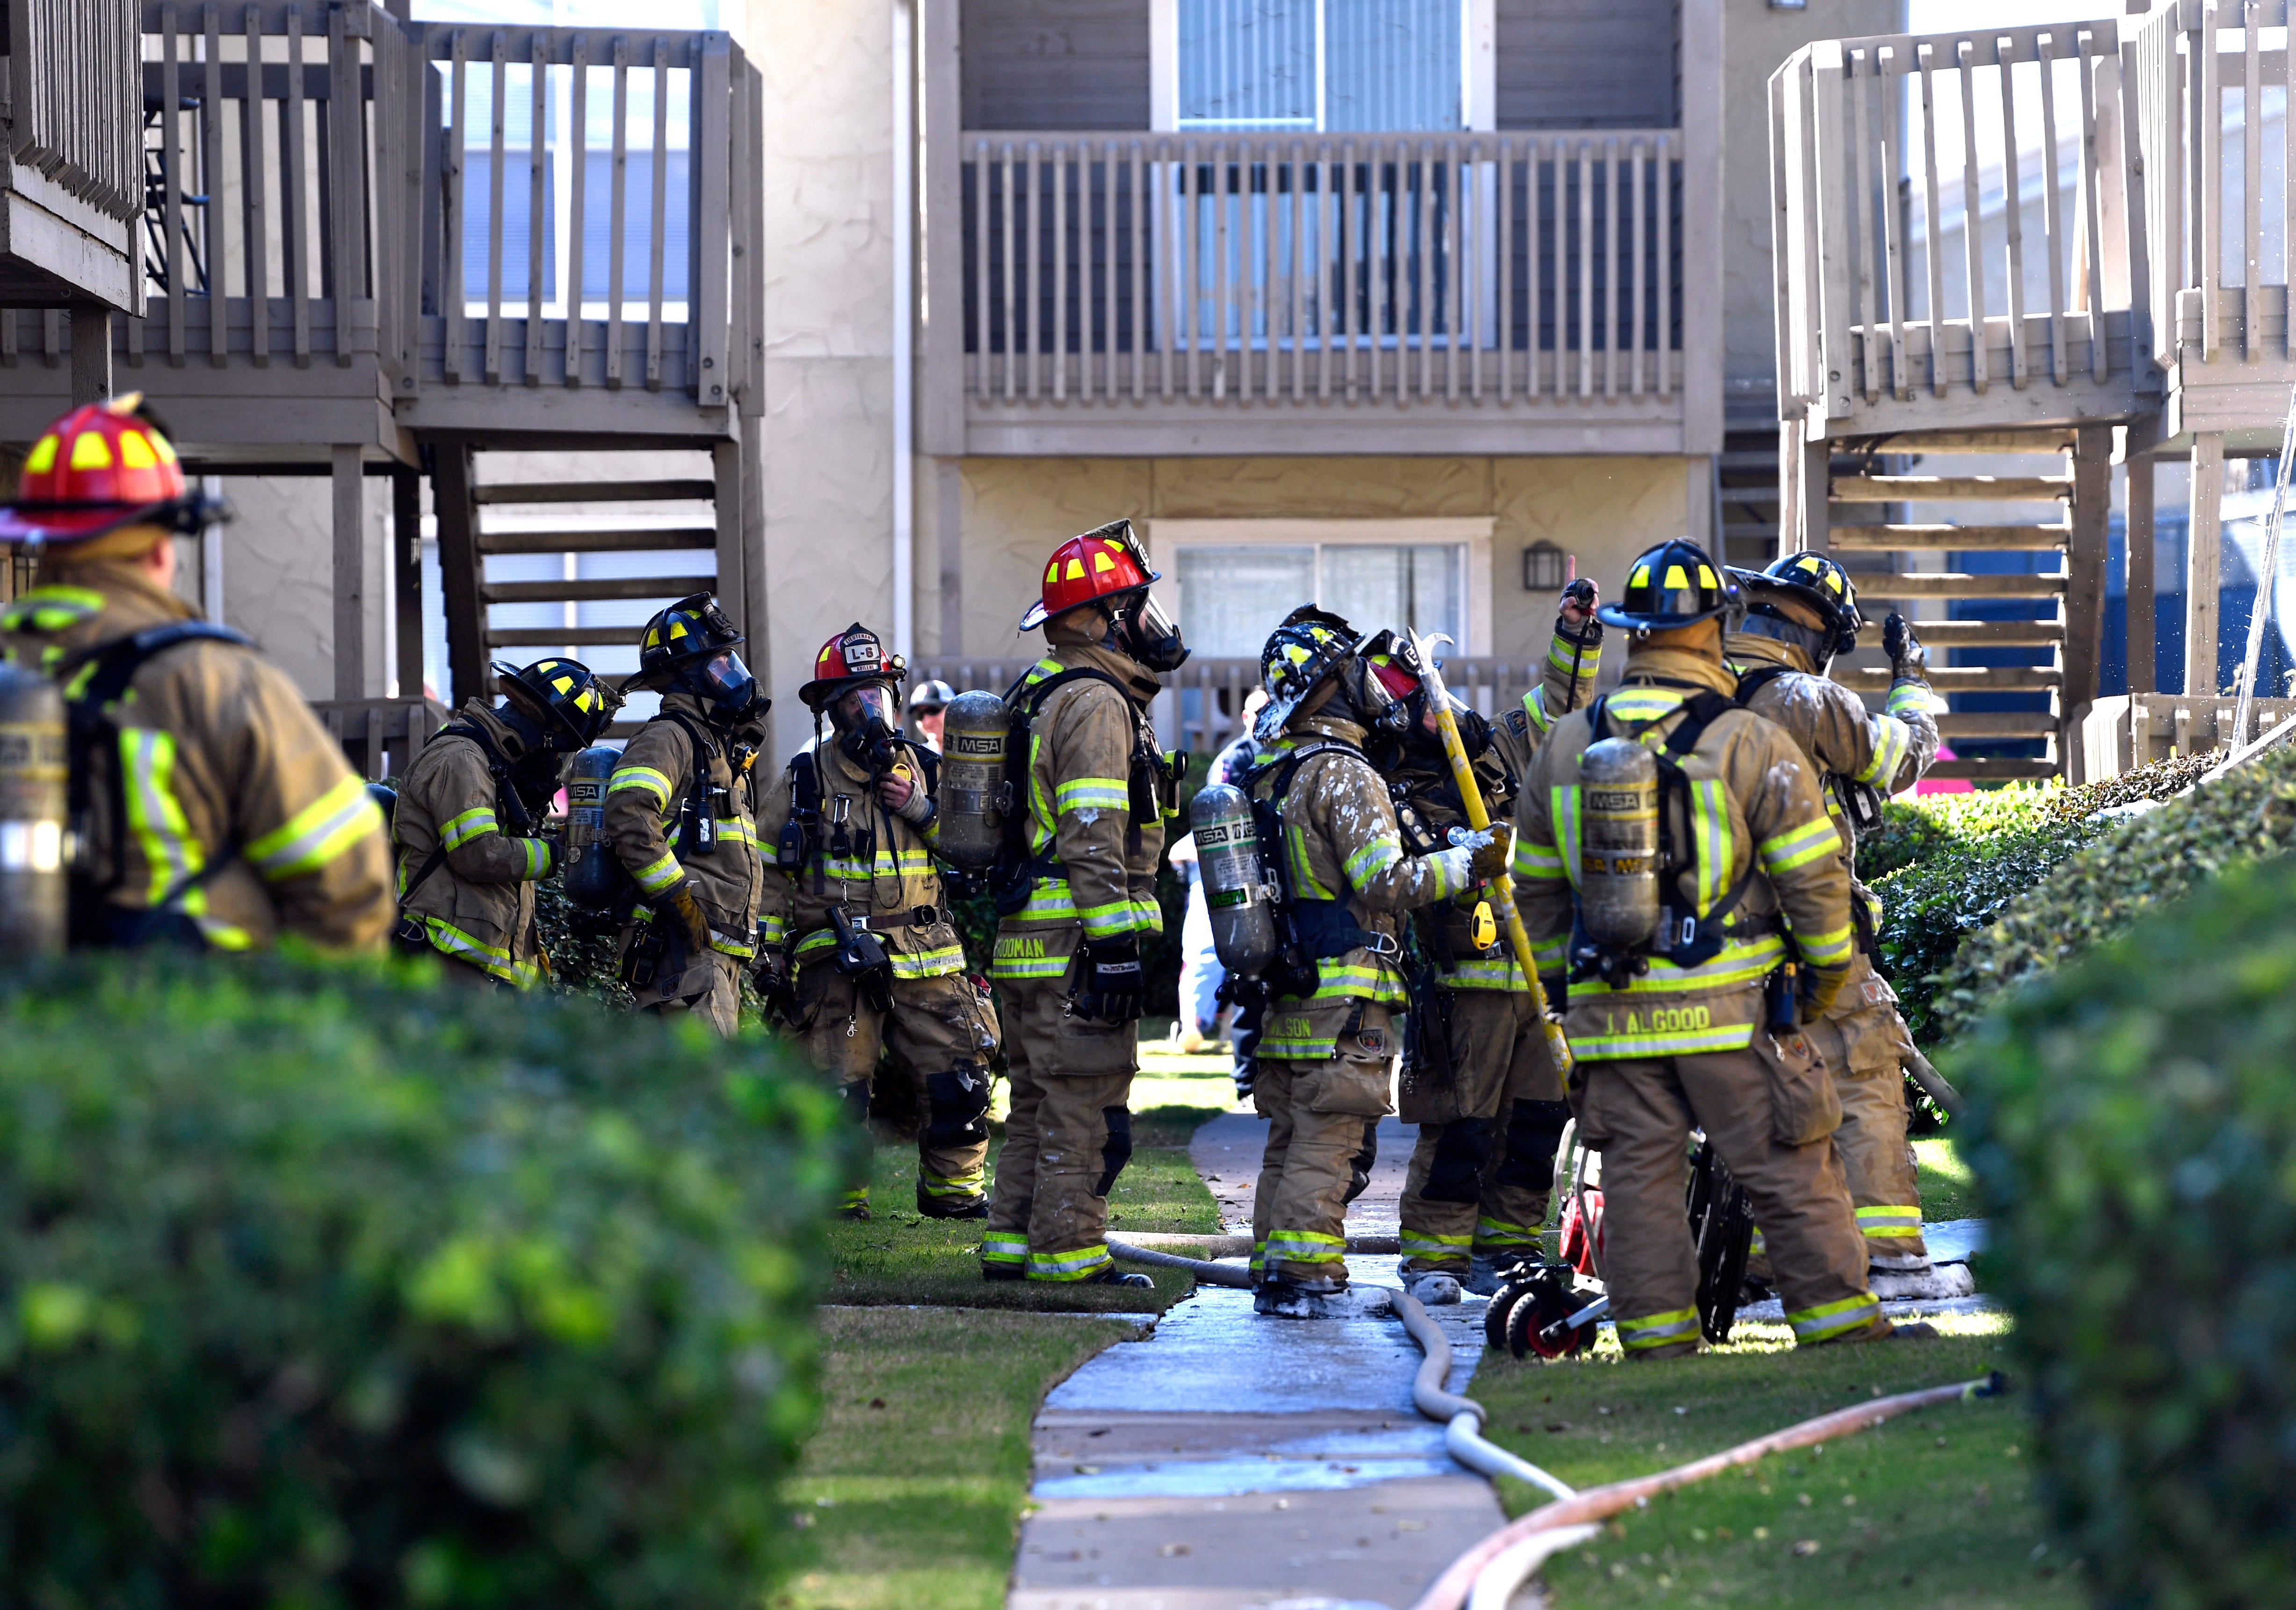 Abilene firefighters standby to assist as others department members fight a fire inside a residence at Indian Run Apartments Tuesday.